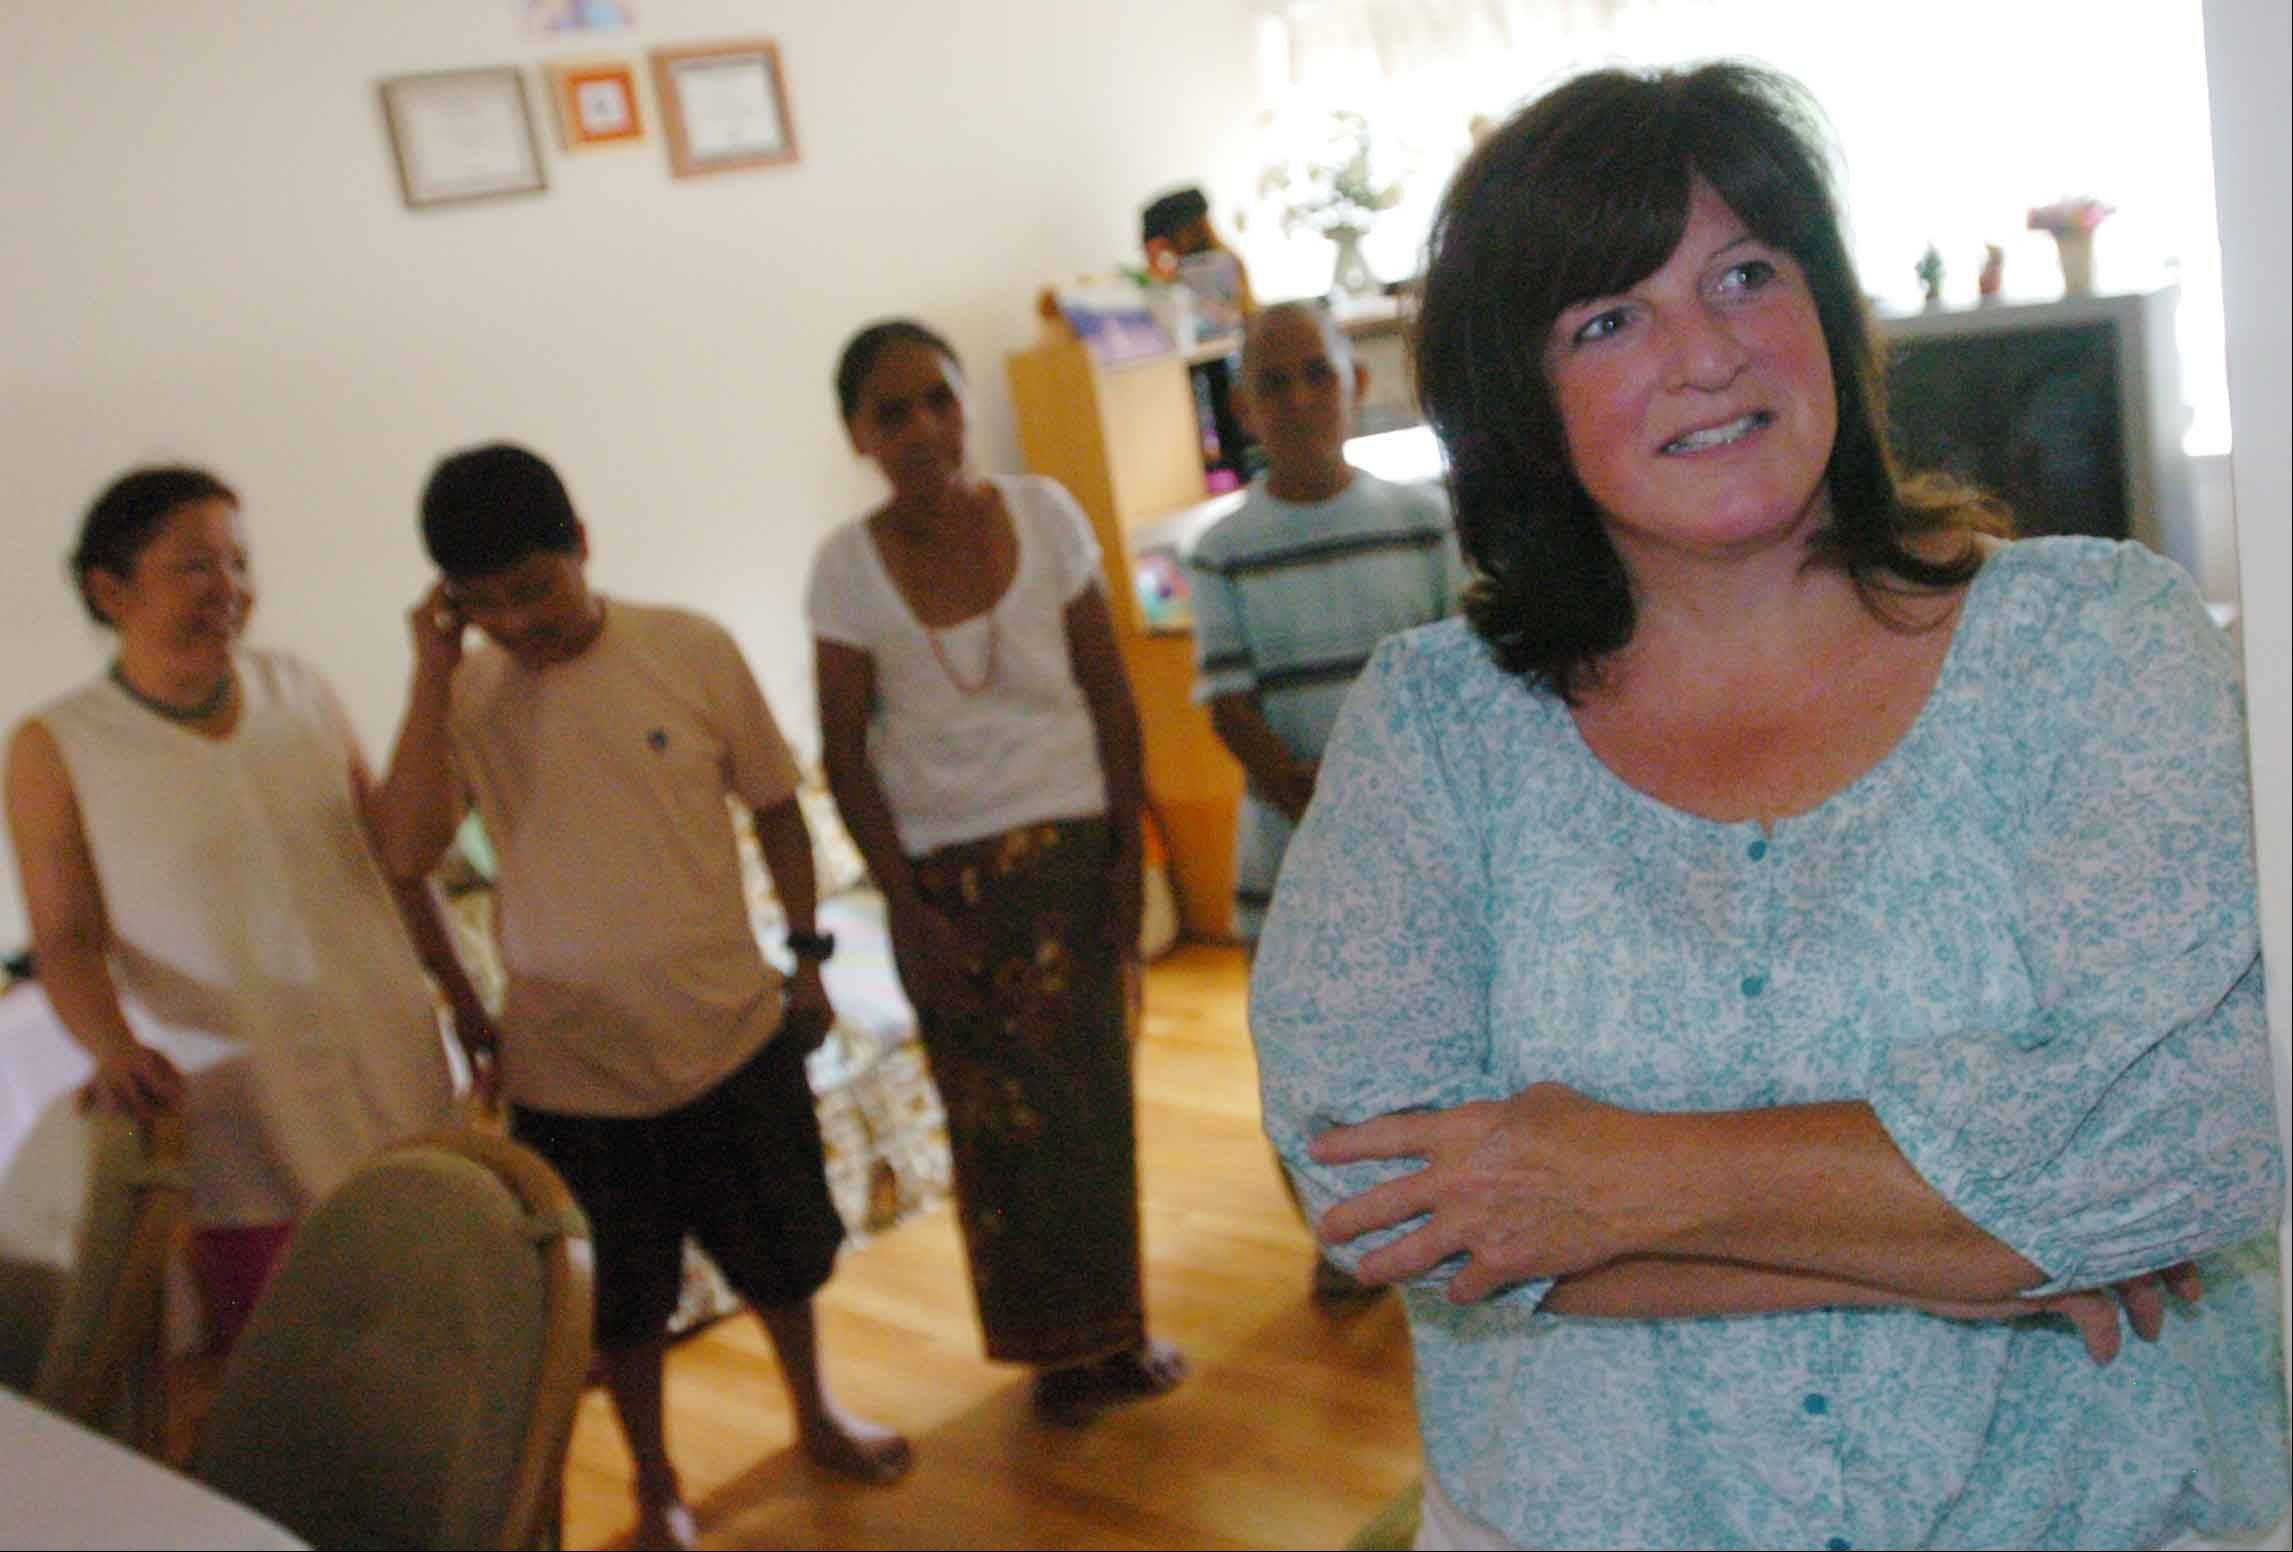 Exodus World Service volunteer Sue Horgan of Roselle has worked with the Magar family since February to help them become acclimated to life in the United States.